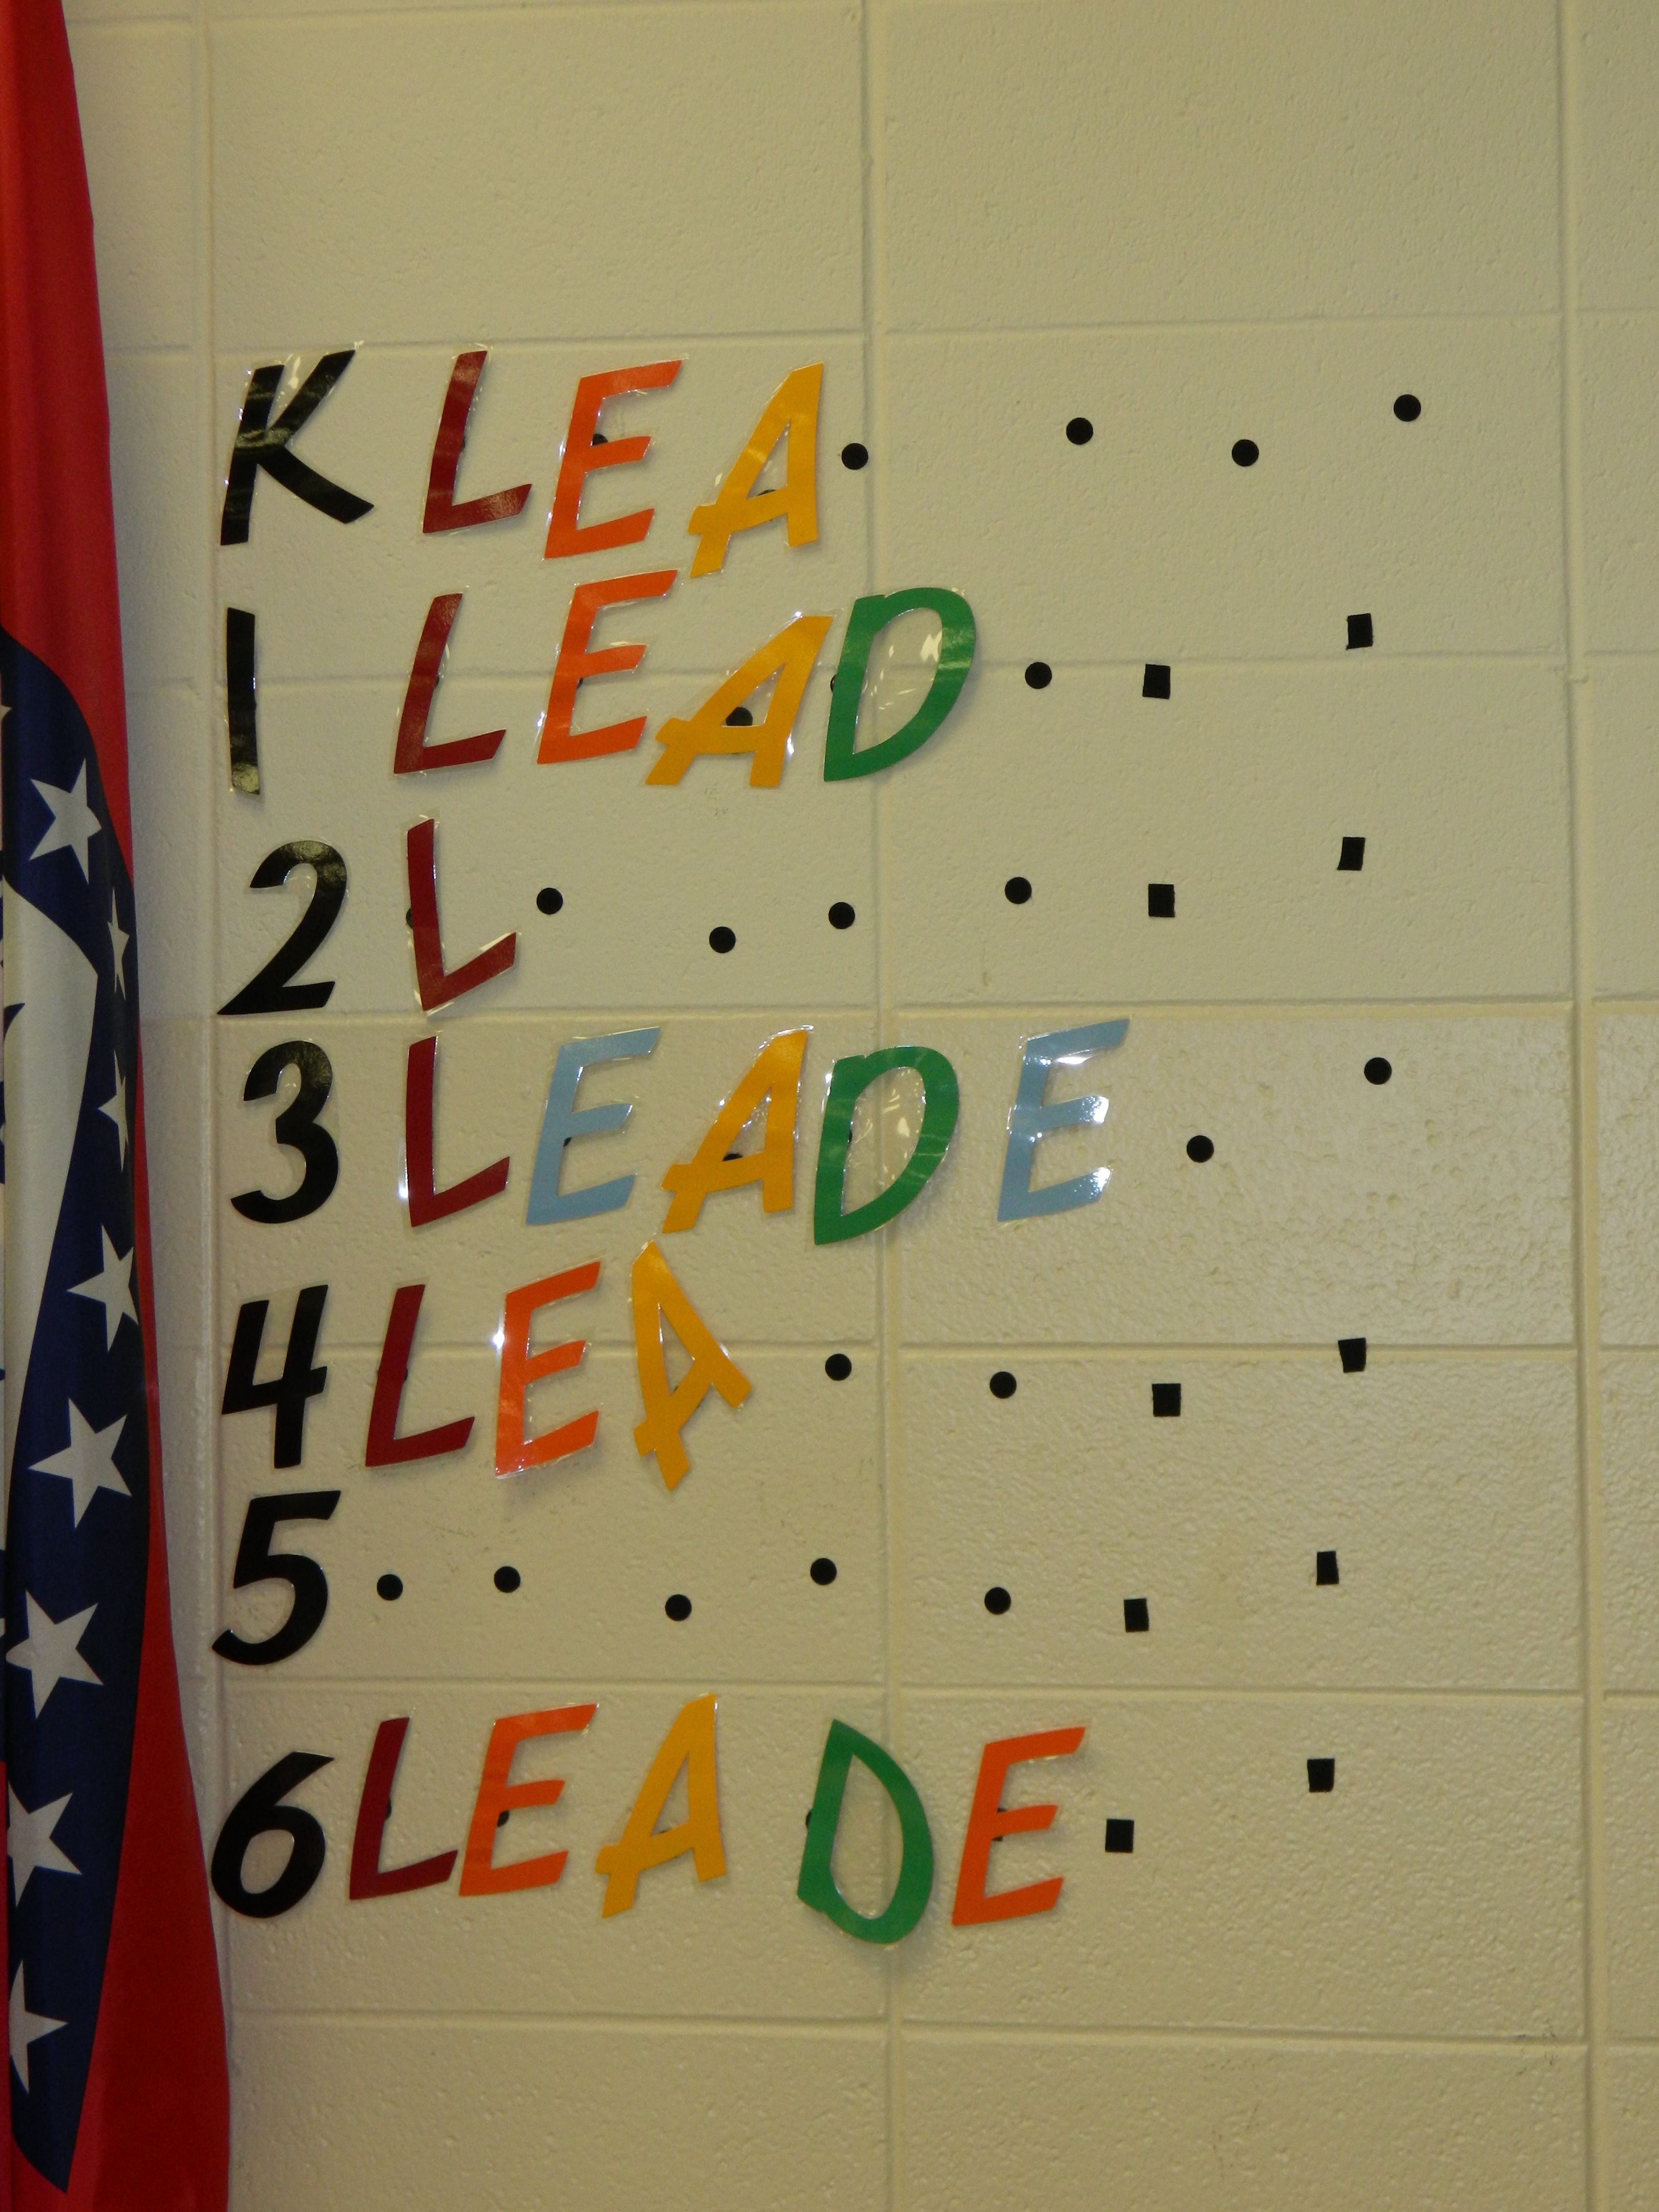 Spelling Leadership By Grade Level In The Cafeteria This Is An Incentive For Each Grade Level